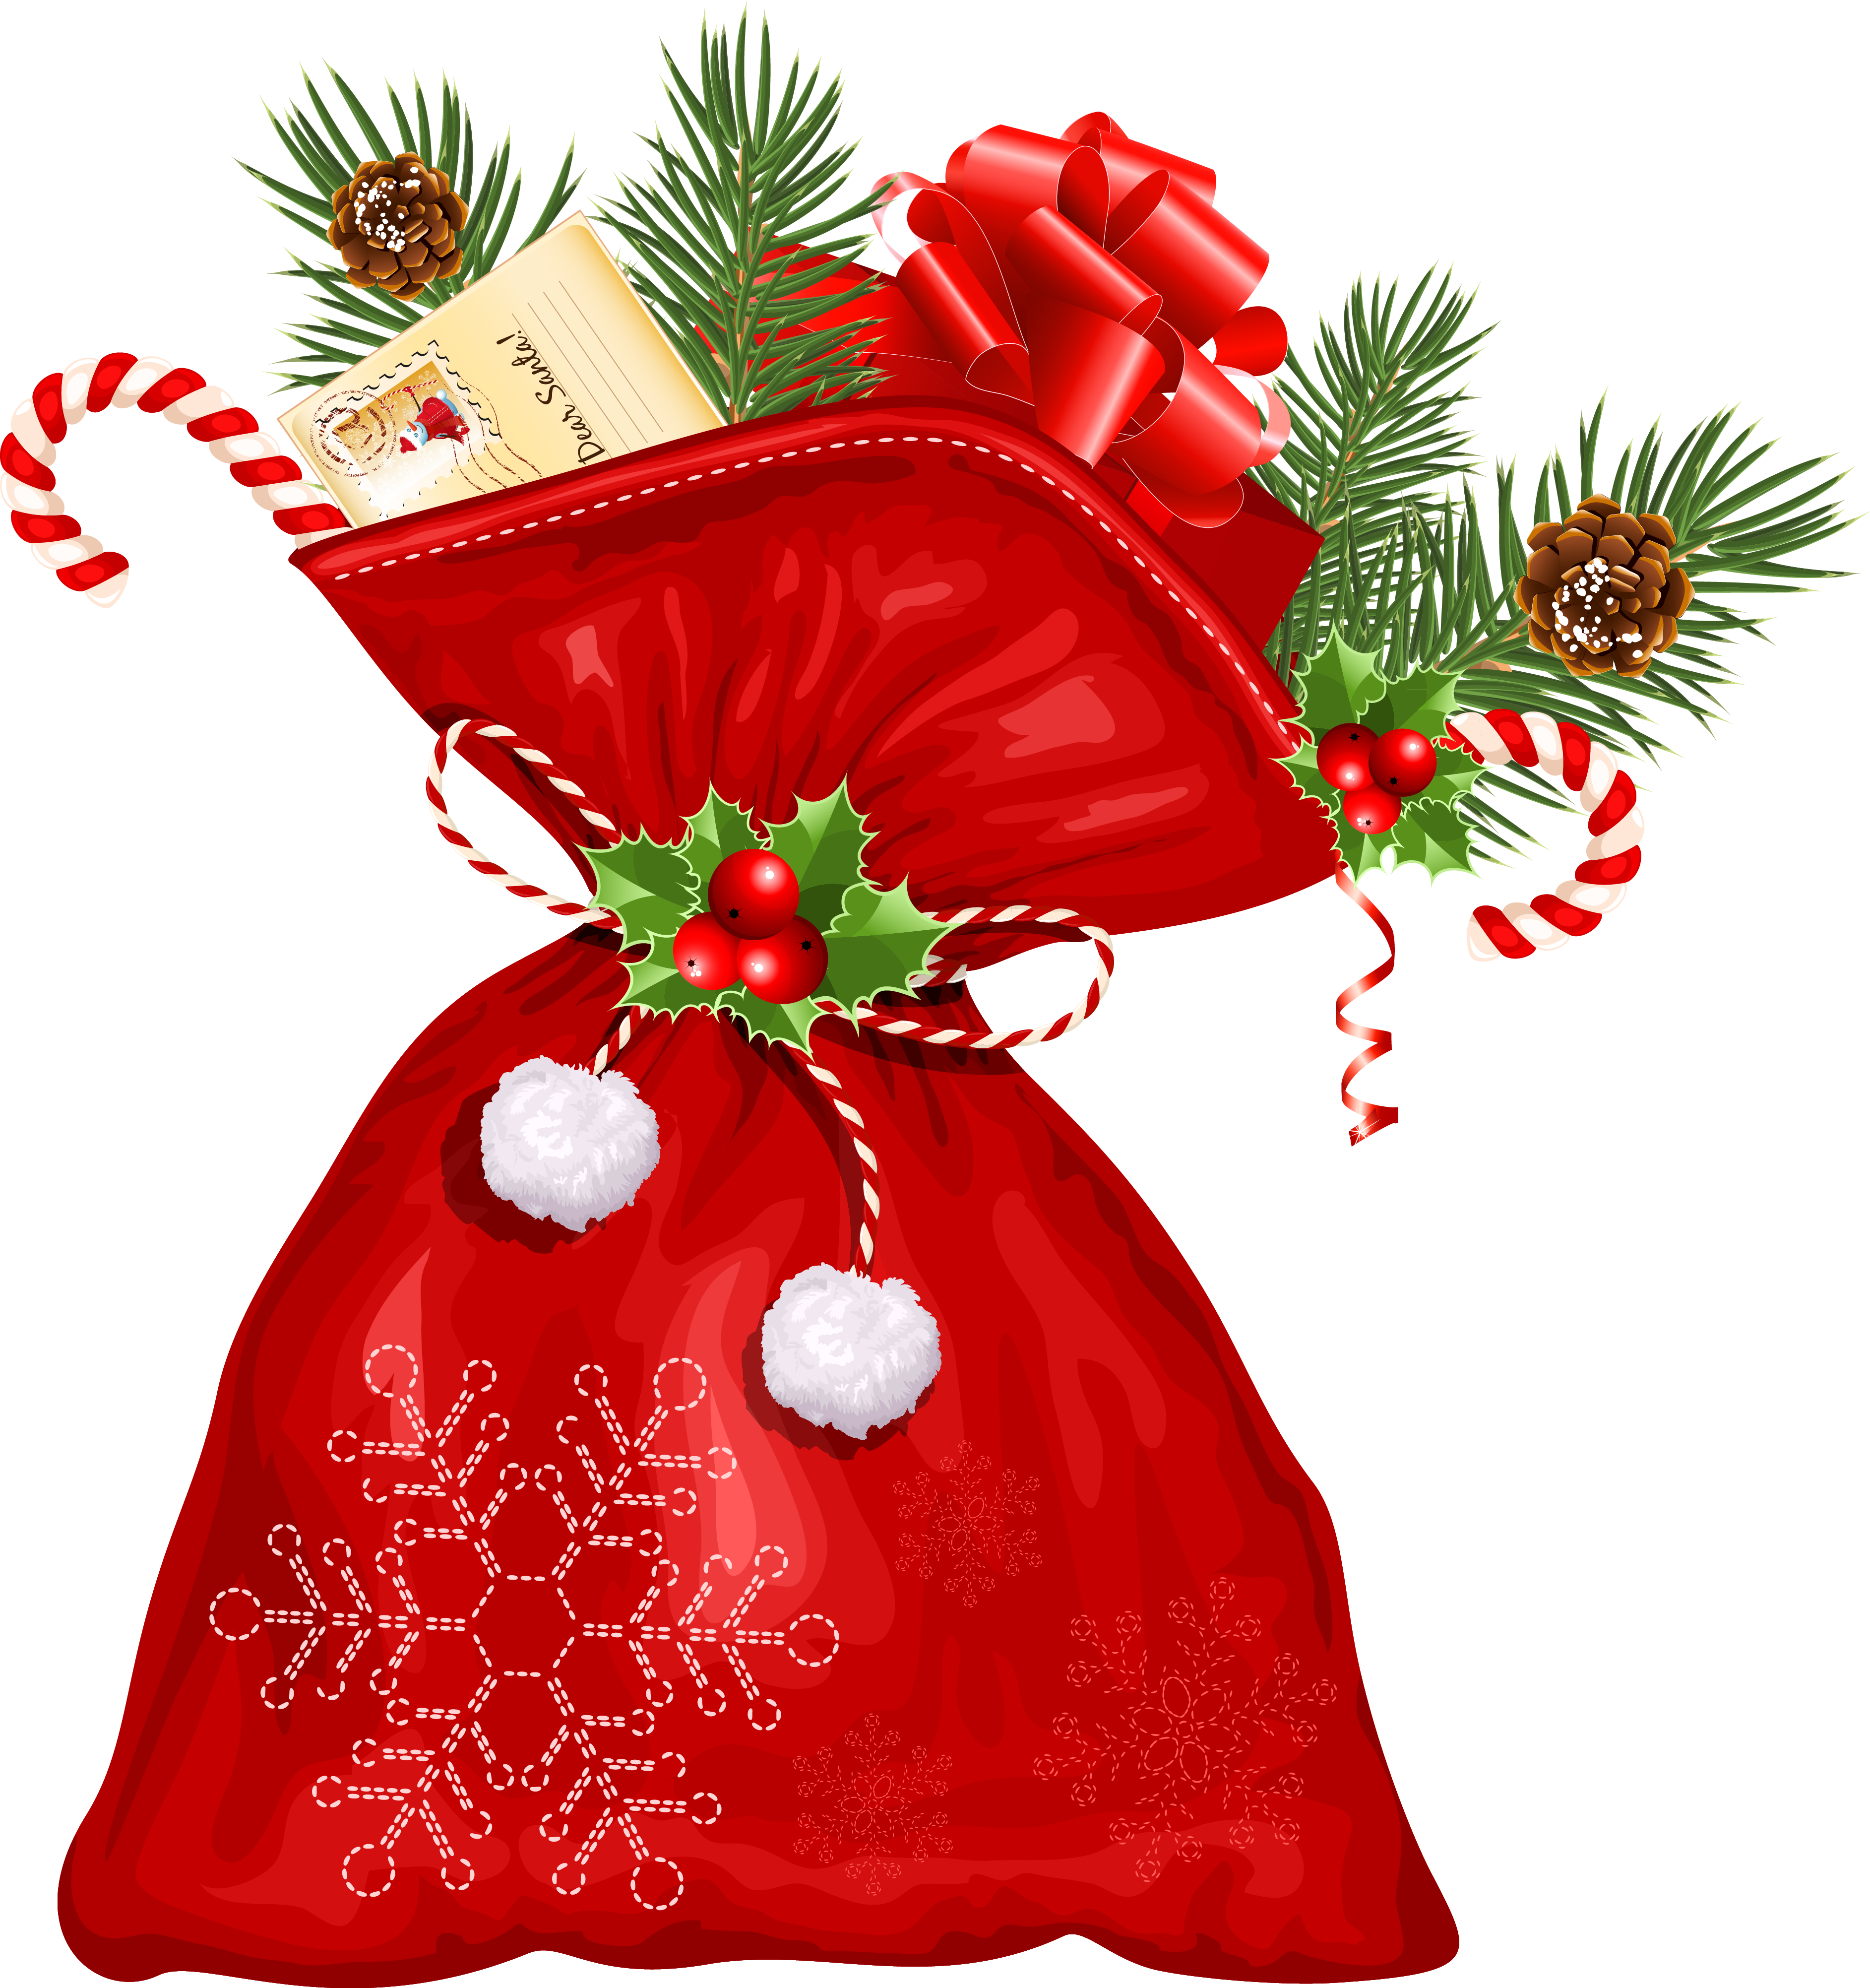 Cane Claus Candy Decoration Flower Santa Christmas PNG Image